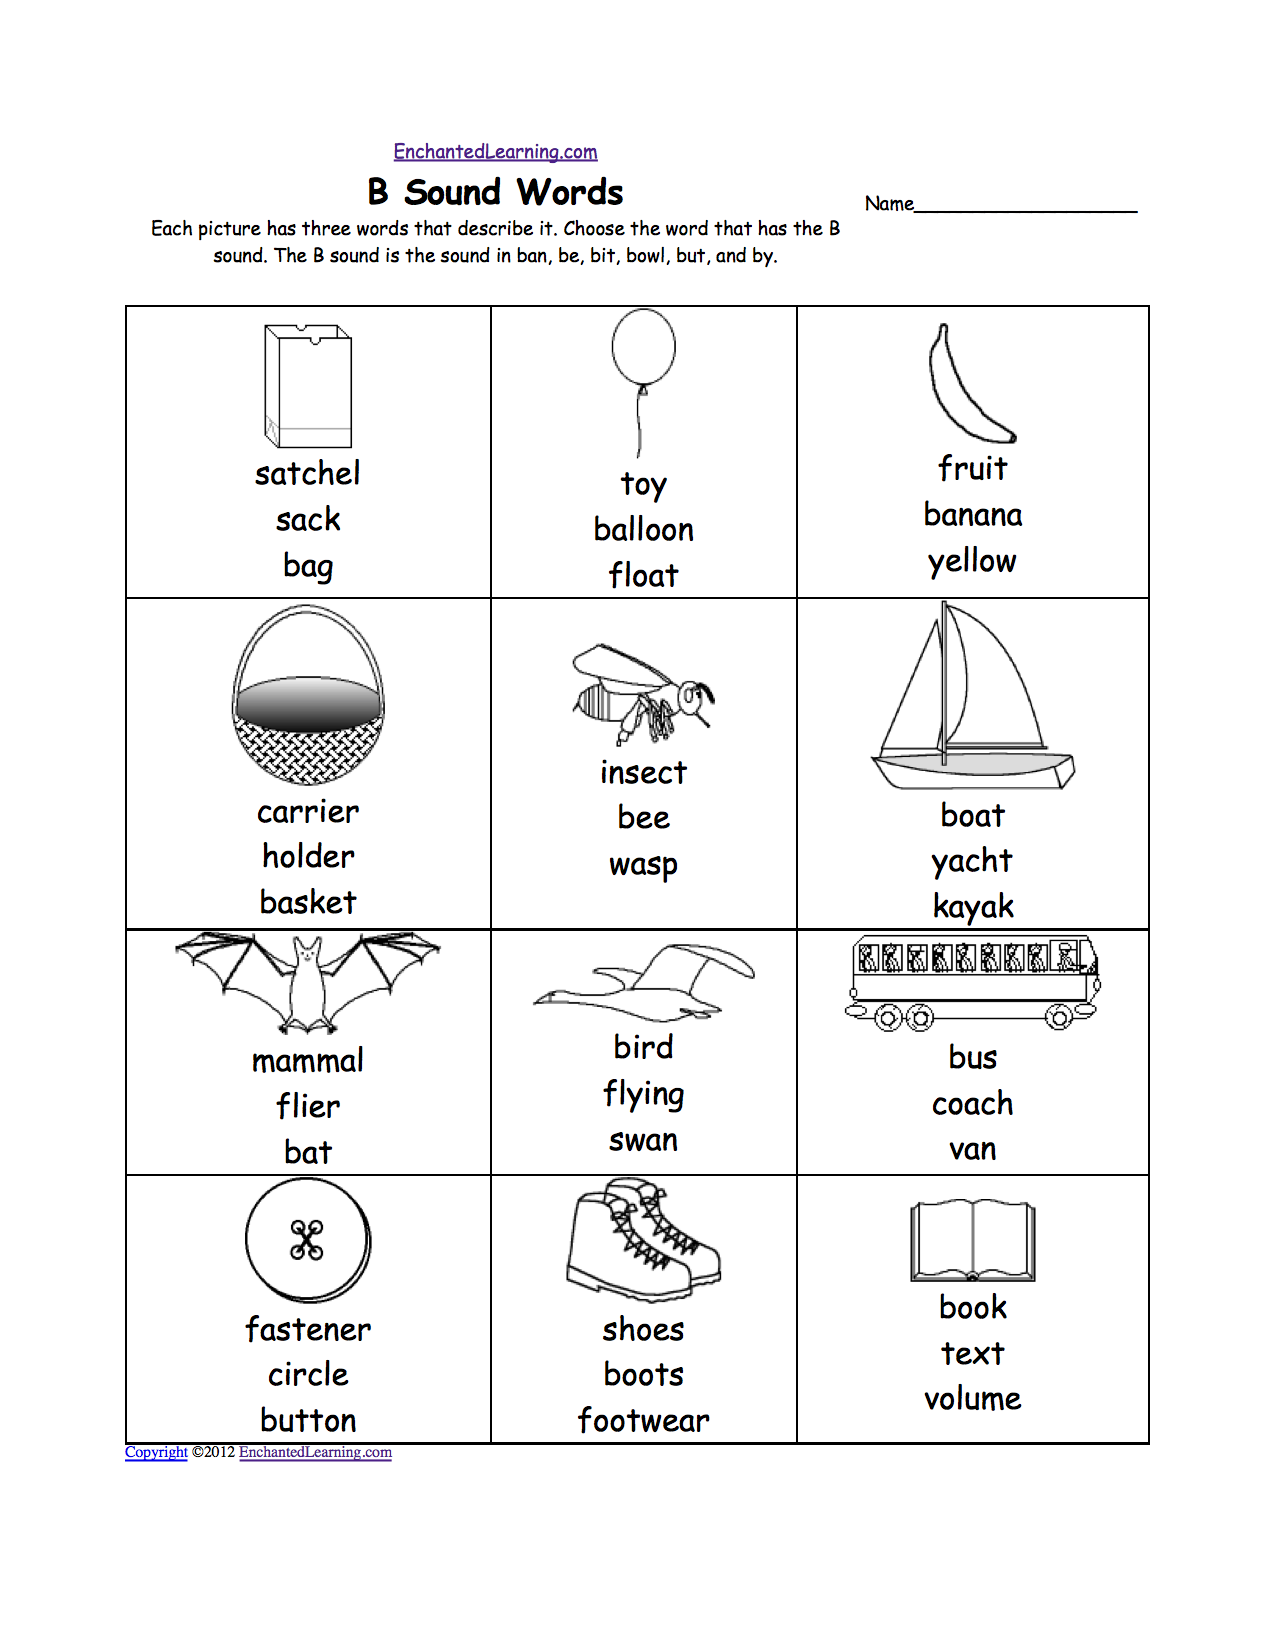 Weirdmailus  Marvelous Phonics Worksheets Multiple Choice Worksheets To Print  With Marvelous Quotbquot Sound Phonics Worksheet Multiple Choice Each Picture Has Three Words That Describe It Choose The Word That Has A Quotbquot Sound The Quotbquot Sound Is The Sound  With Beautiful Worksheets Homophones Also Maths Worksheets On Time In Addition Dodging Tables Worksheet And Free Printable Double Digit Addition Worksheets As Well As Subtraction Using Number Line Worksheets Additionally Adjectives Of Quantity Worksheets From Enchantedlearningcom With Weirdmailus  Marvelous Phonics Worksheets Multiple Choice Worksheets To Print  With Beautiful Quotbquot Sound Phonics Worksheet Multiple Choice Each Picture Has Three Words That Describe It Choose The Word That Has A Quotbquot Sound The Quotbquot Sound Is The Sound  And Marvelous Worksheets Homophones Also Maths Worksheets On Time In Addition Dodging Tables Worksheet From Enchantedlearningcom